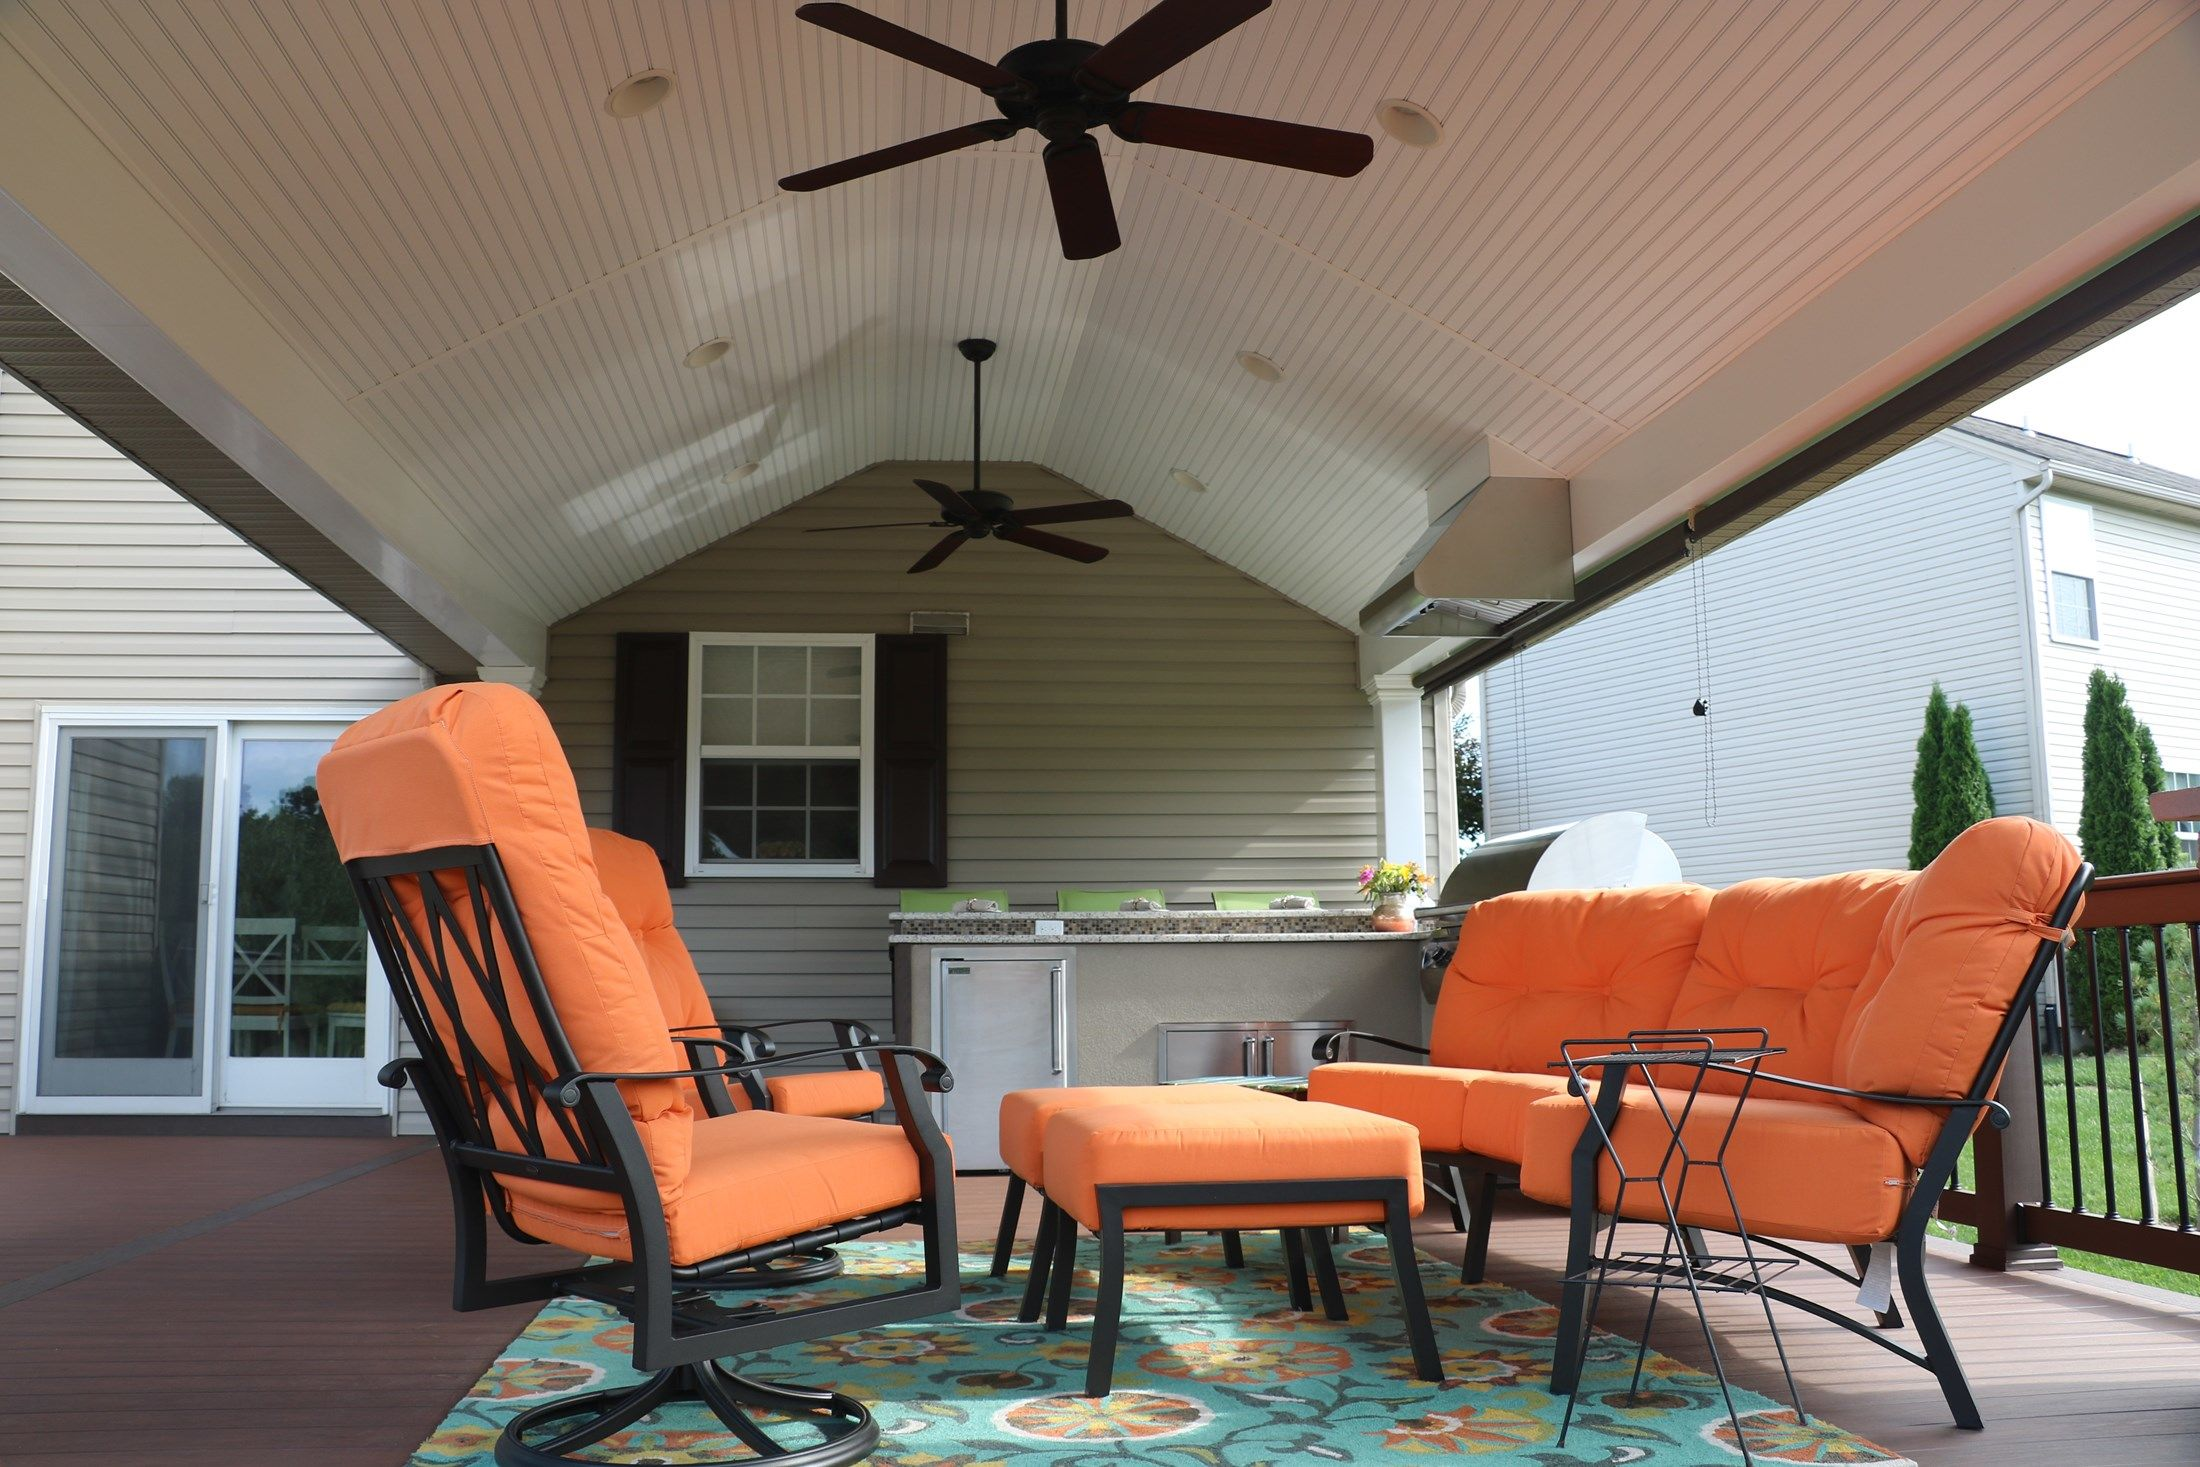 Timbertech Deck w/ Roof & Outdoor Kitchen - Picture 6731